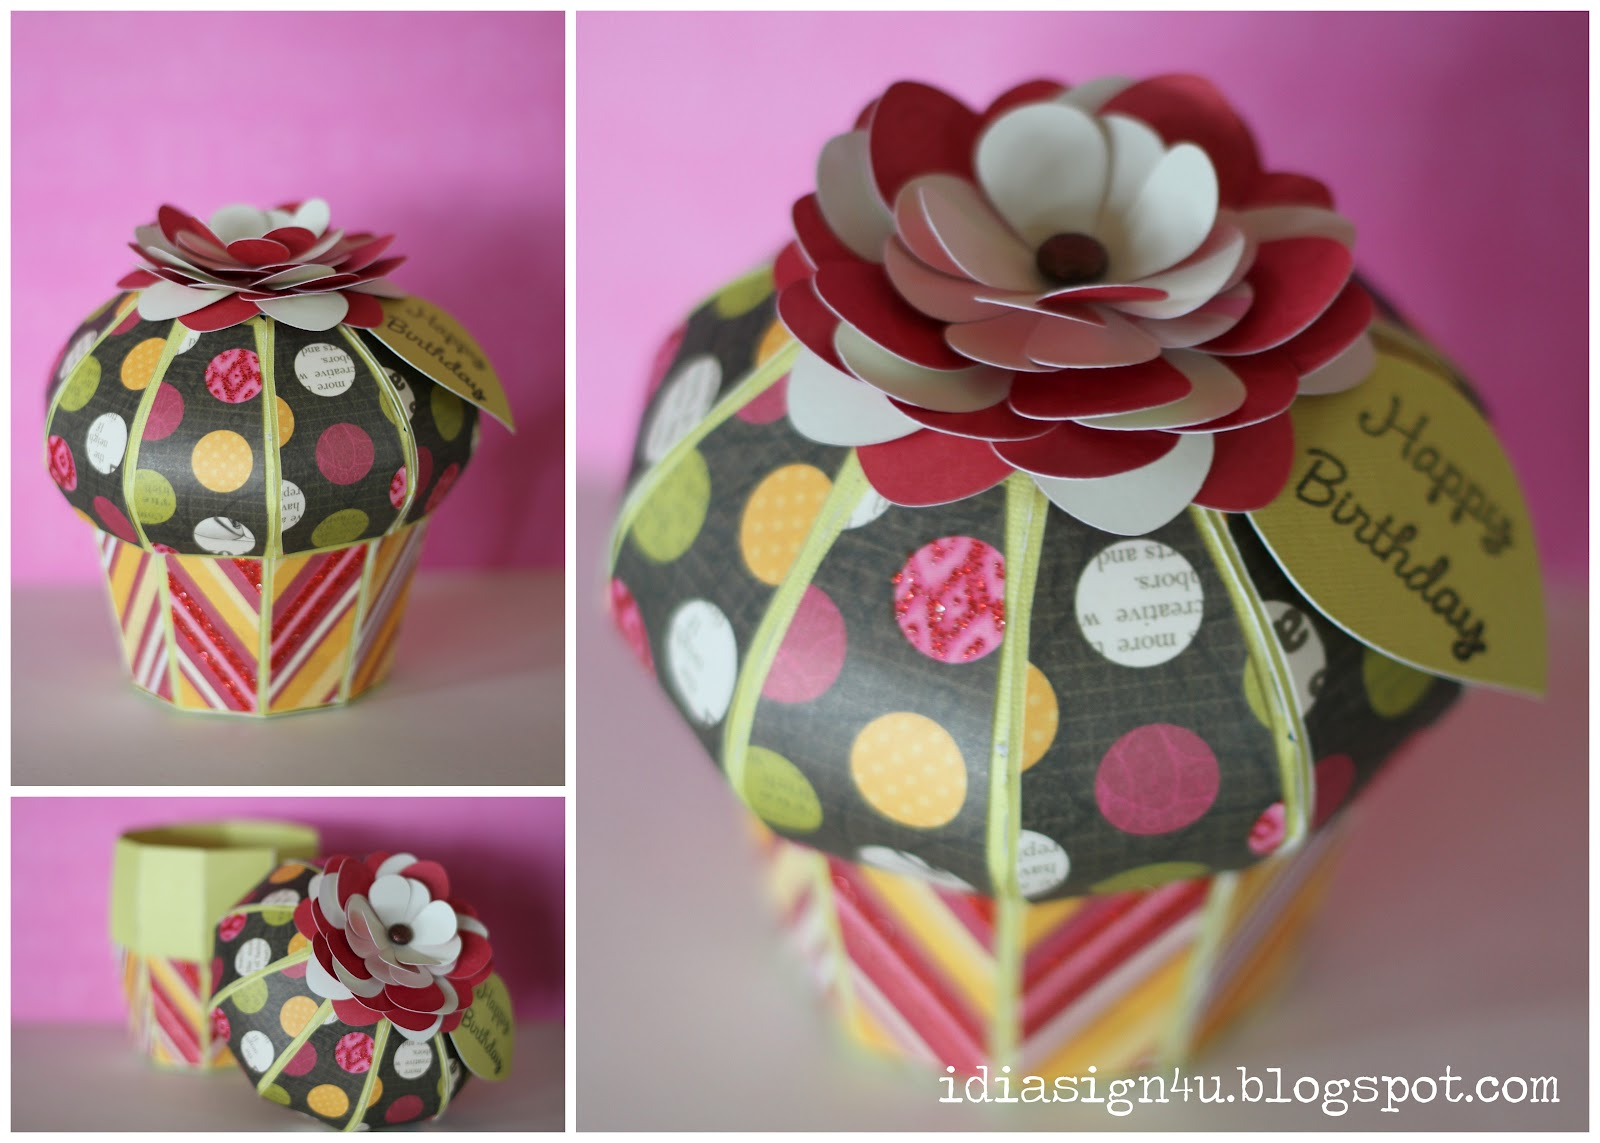 I Love Doing All Things Crafty: 3D Paper Cupcakes!